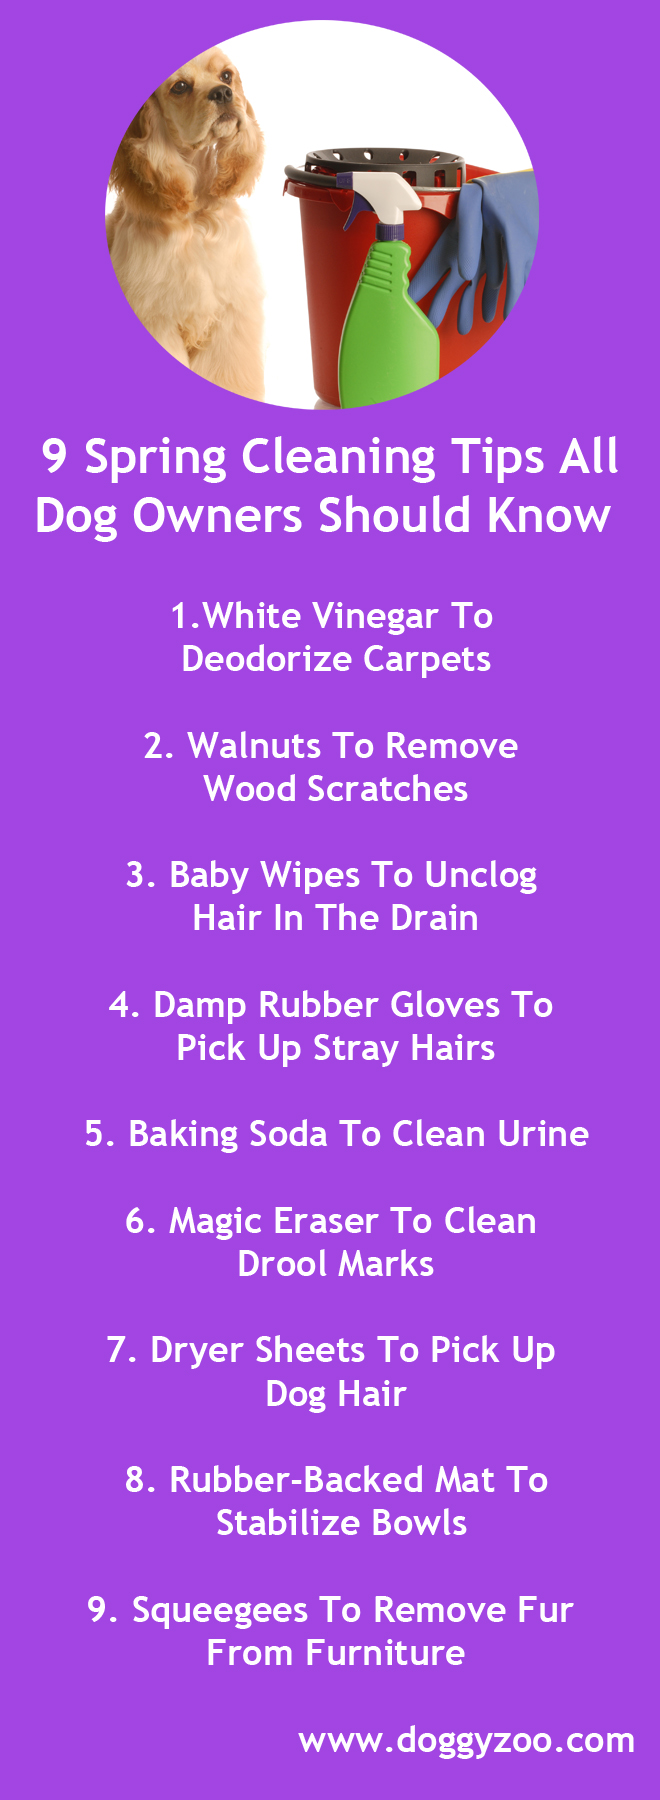 9 Spring Cleaning Tips All Dog Owners Should Know